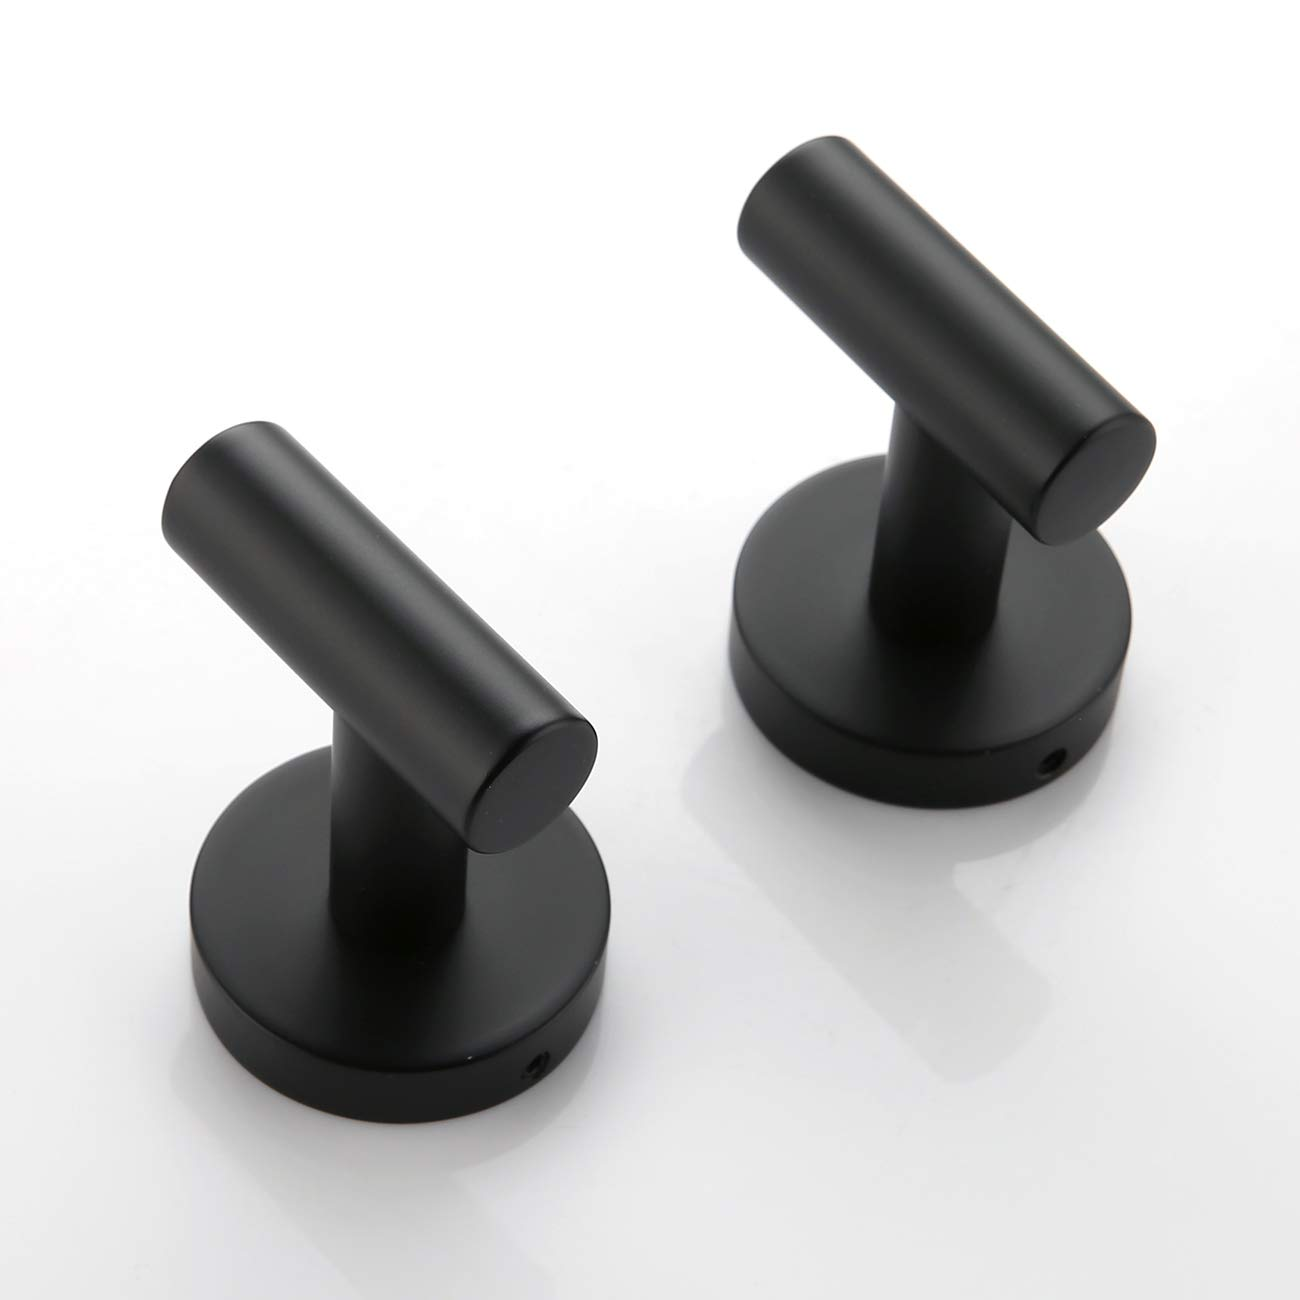 Hoooh Matte Black Coat Hook Towel/Robe Clothes Hook for Bath Kitchen Garage SUS 304 Stainless Steel Wall Mounted, 2 Pack, B100-BK-P2 by Hoooh (Image #6)